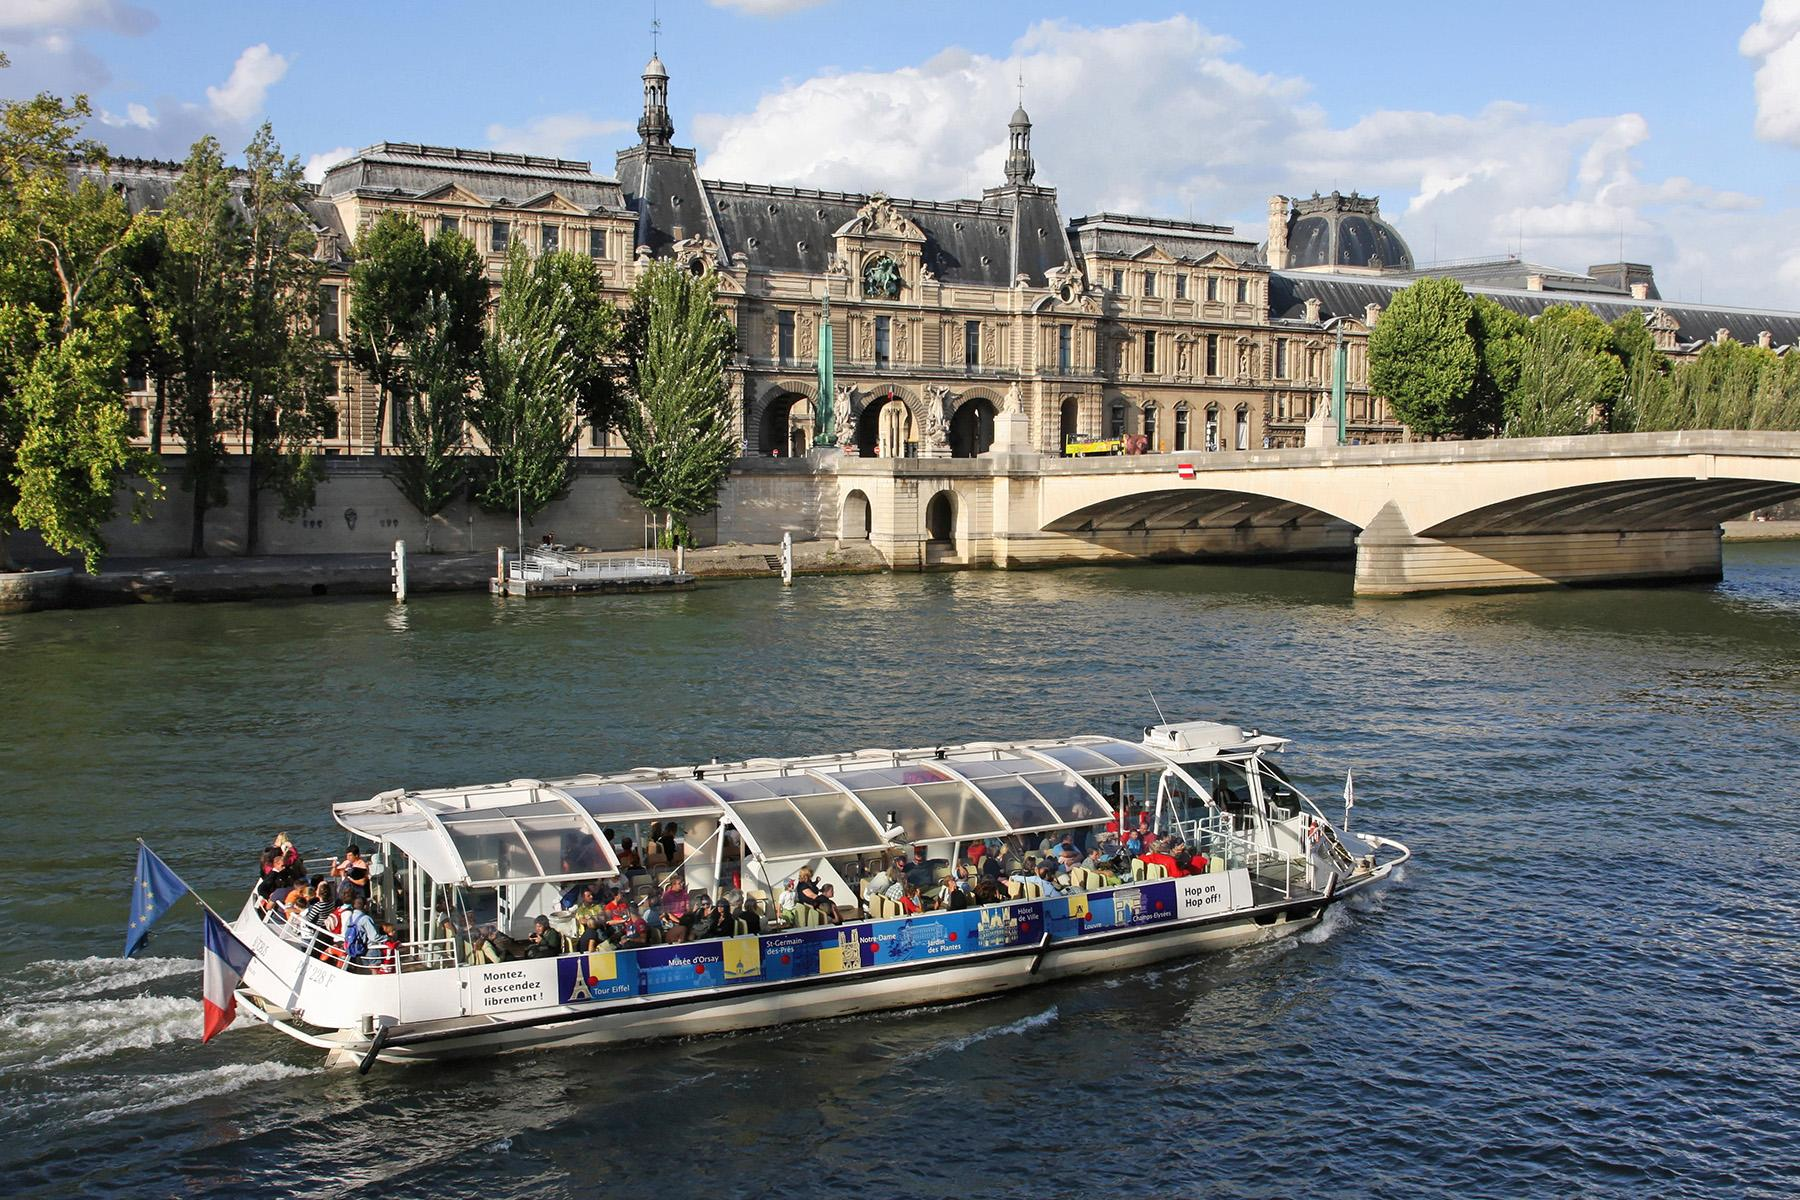 7 Ride the Bateau Mouche the 25 ultimate things to do in paris The 25 Ultimate Things to Do in Paris 7 Ride the Bateau Mouche